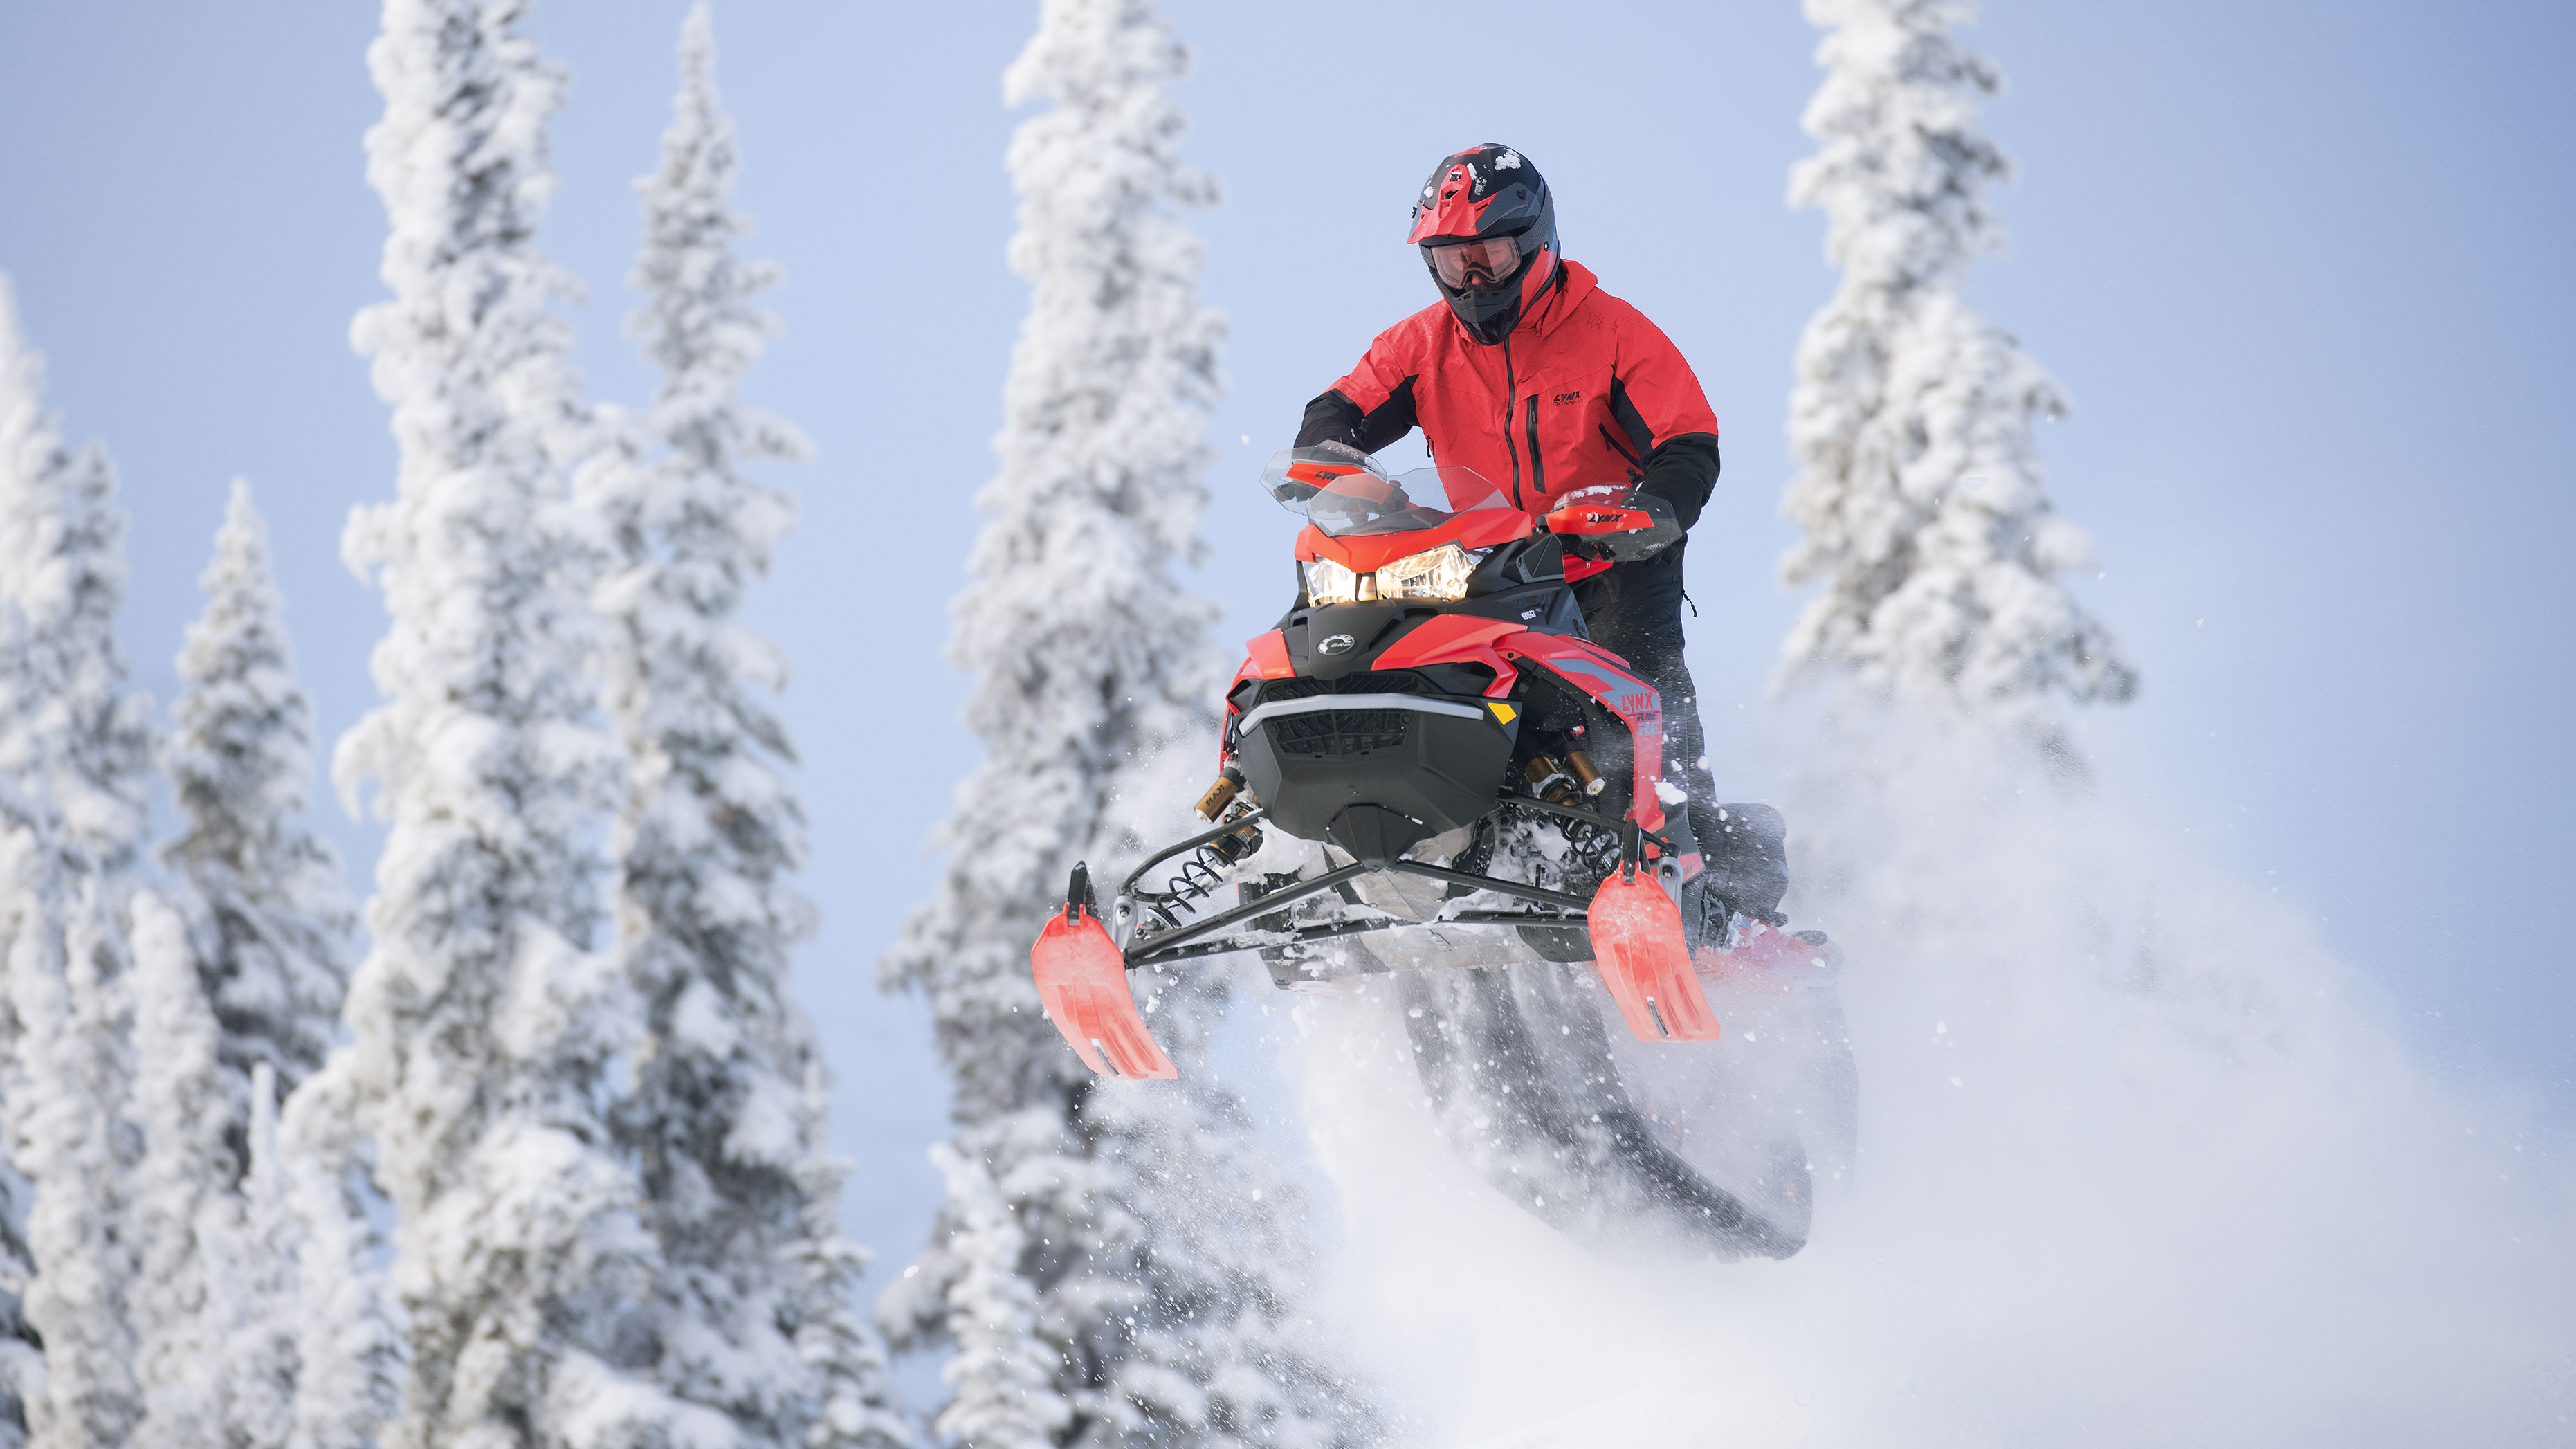 Lynx Rave RE snowmobile riding on bumpy trail